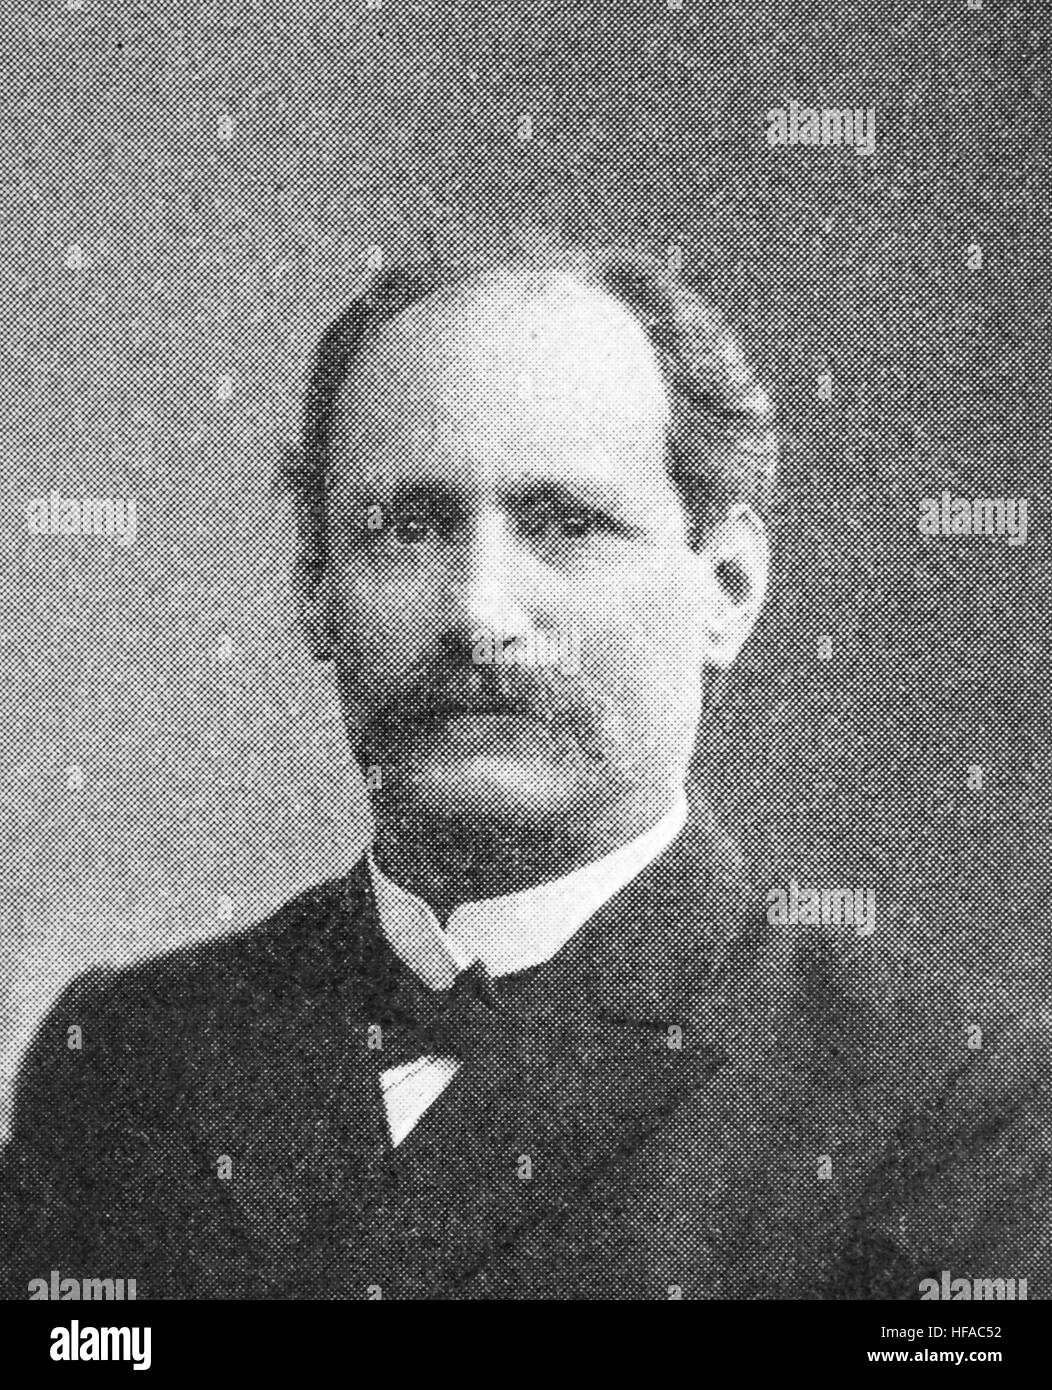 Edgar Loening, in 1843-1919, a German jurist., reproduction photo from the year 1895, digital improved - Stock Image